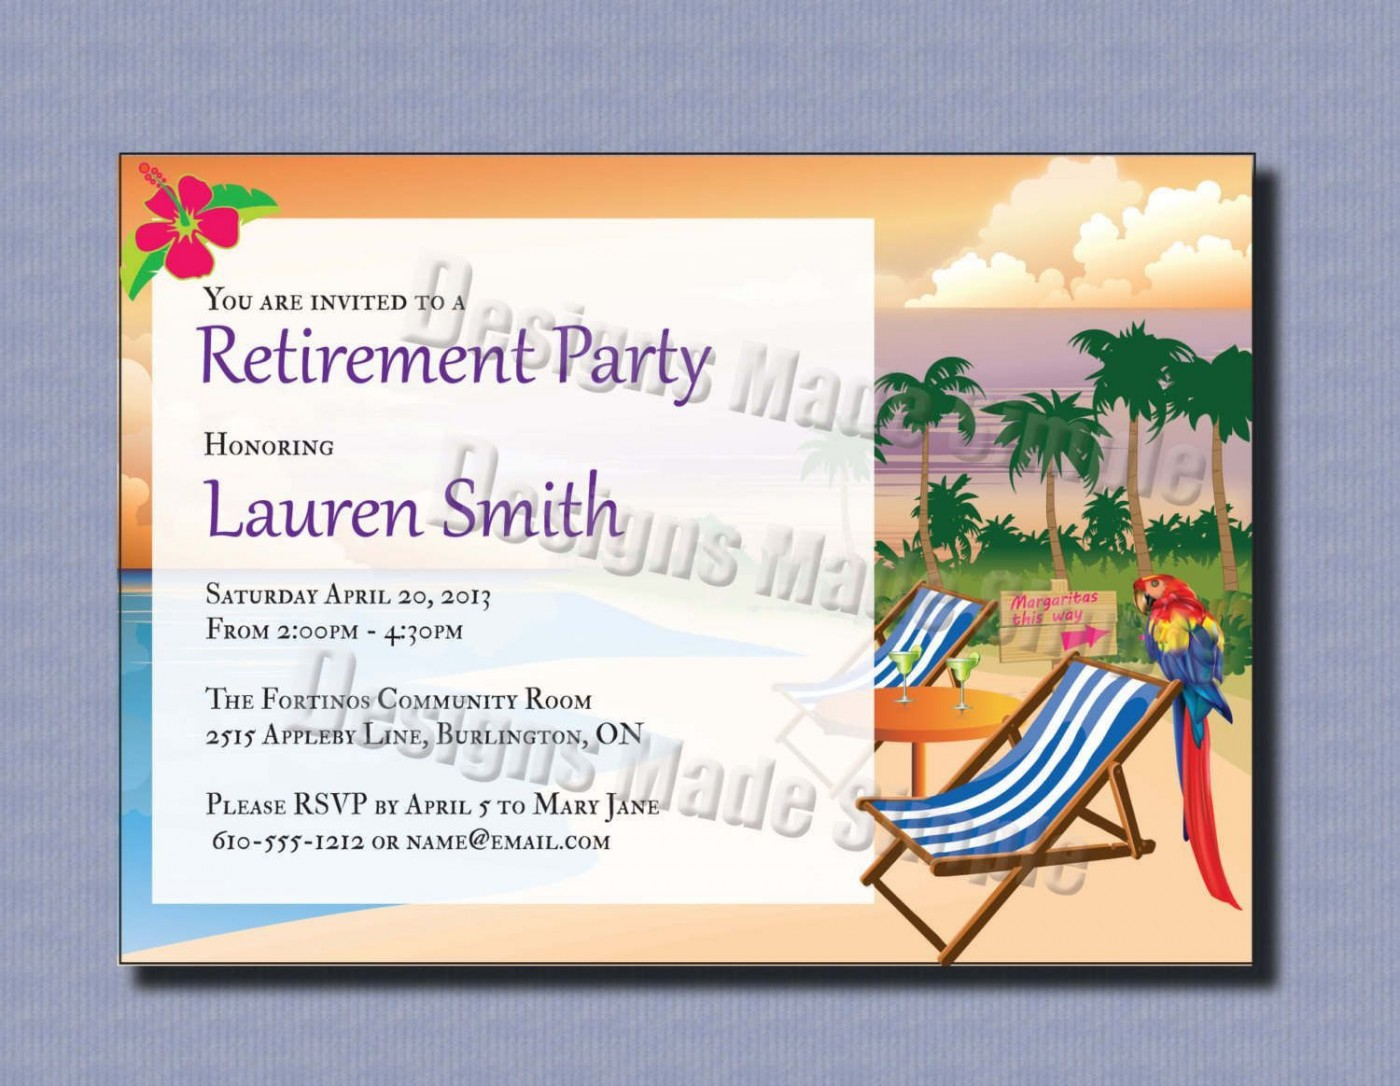 000 Awful Retirement Party Invite Template Word Free Photo 1400